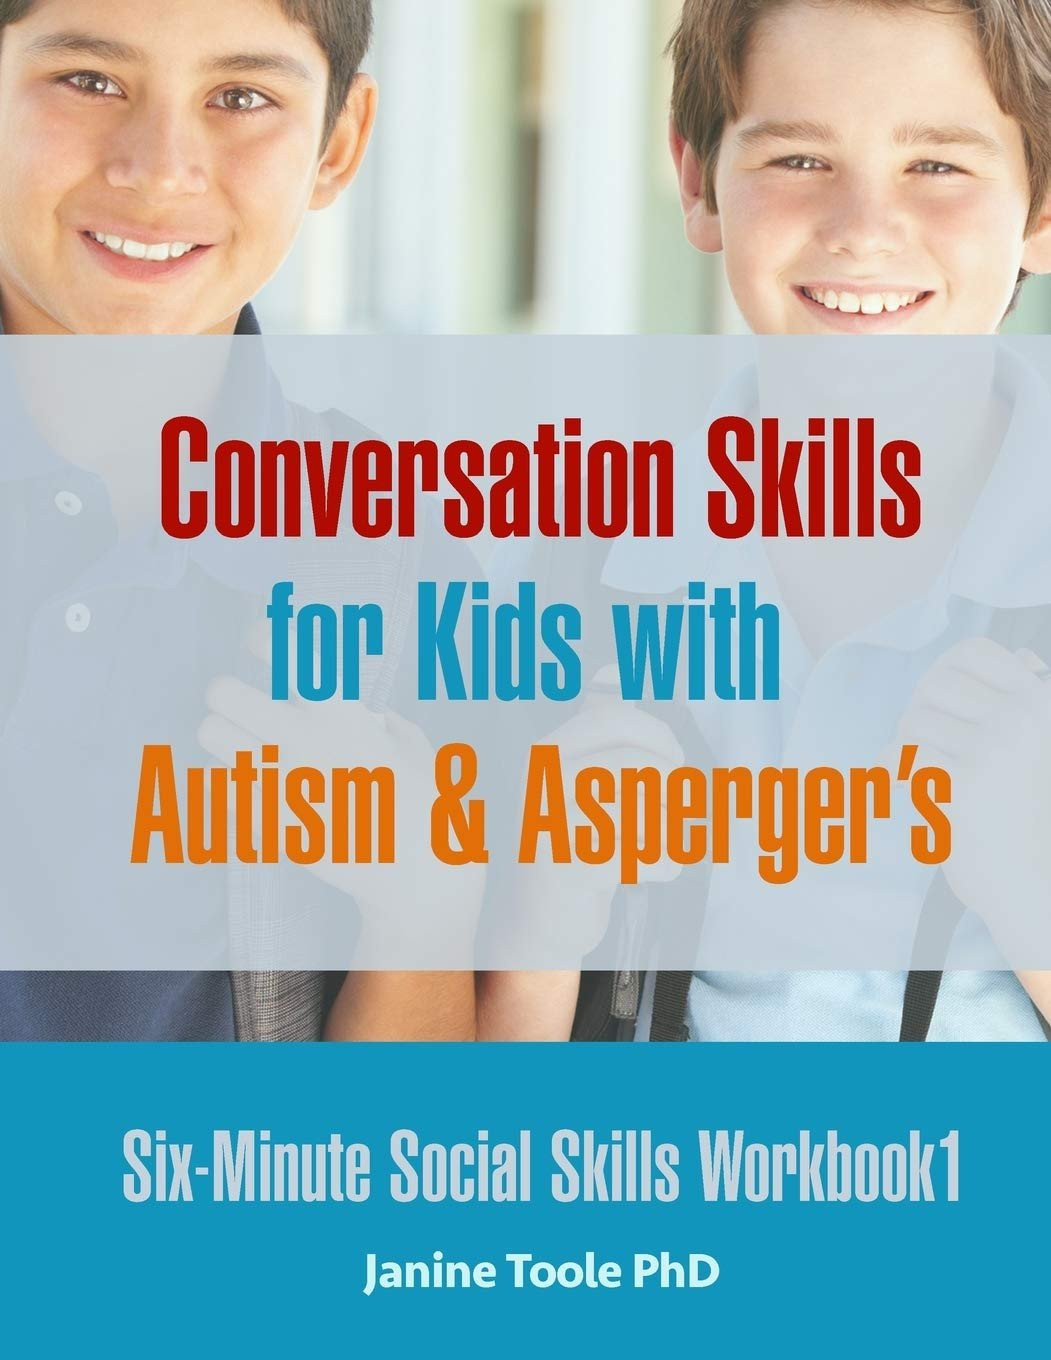 Social Skills Worksheets for Autism Six Minute social Skills Workbook 1 Conversation Skills for